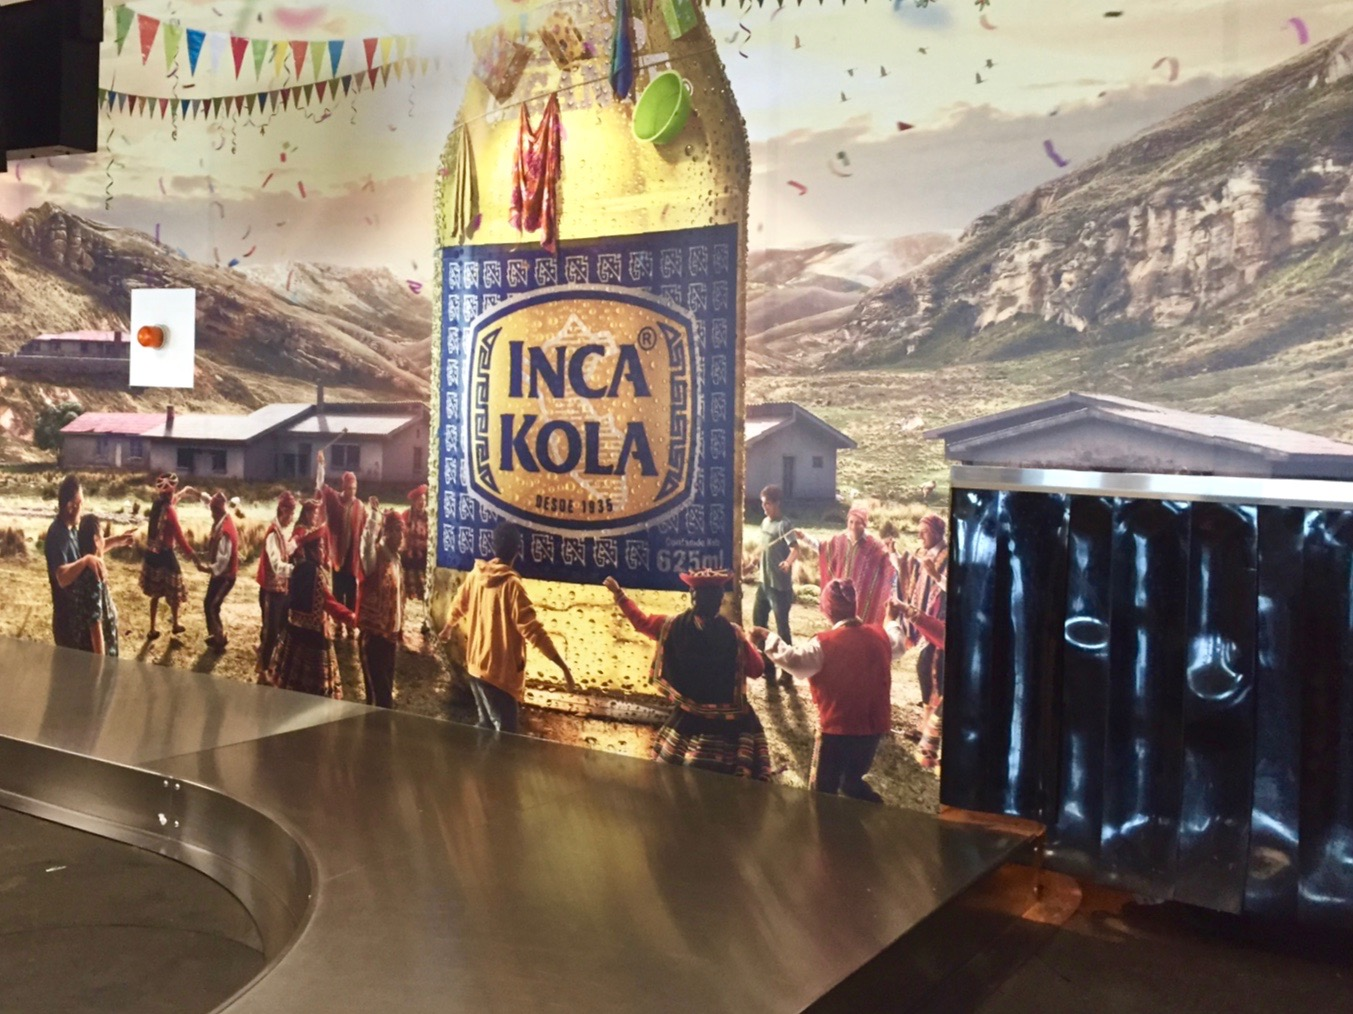 Inca Cola as Yunza in the Lima Airport (David Knowlton)